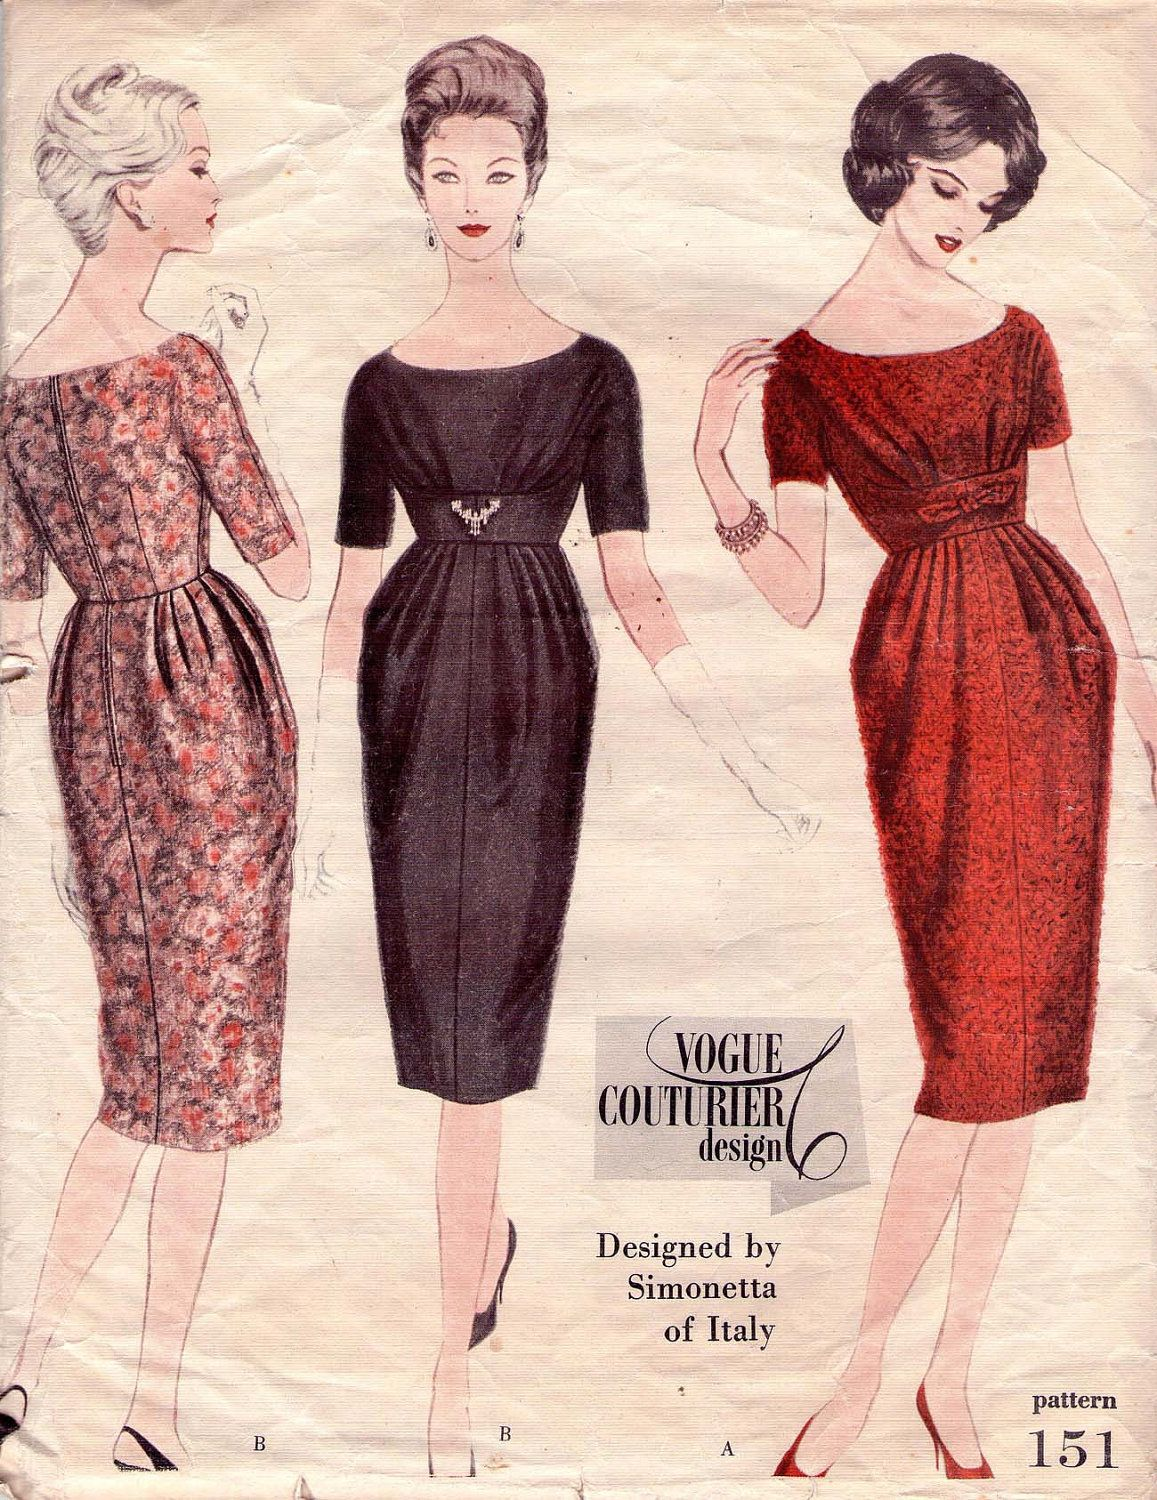 c1960s Vogue Couturier Design Pattern 151 -Simonetta of Italy -High ...